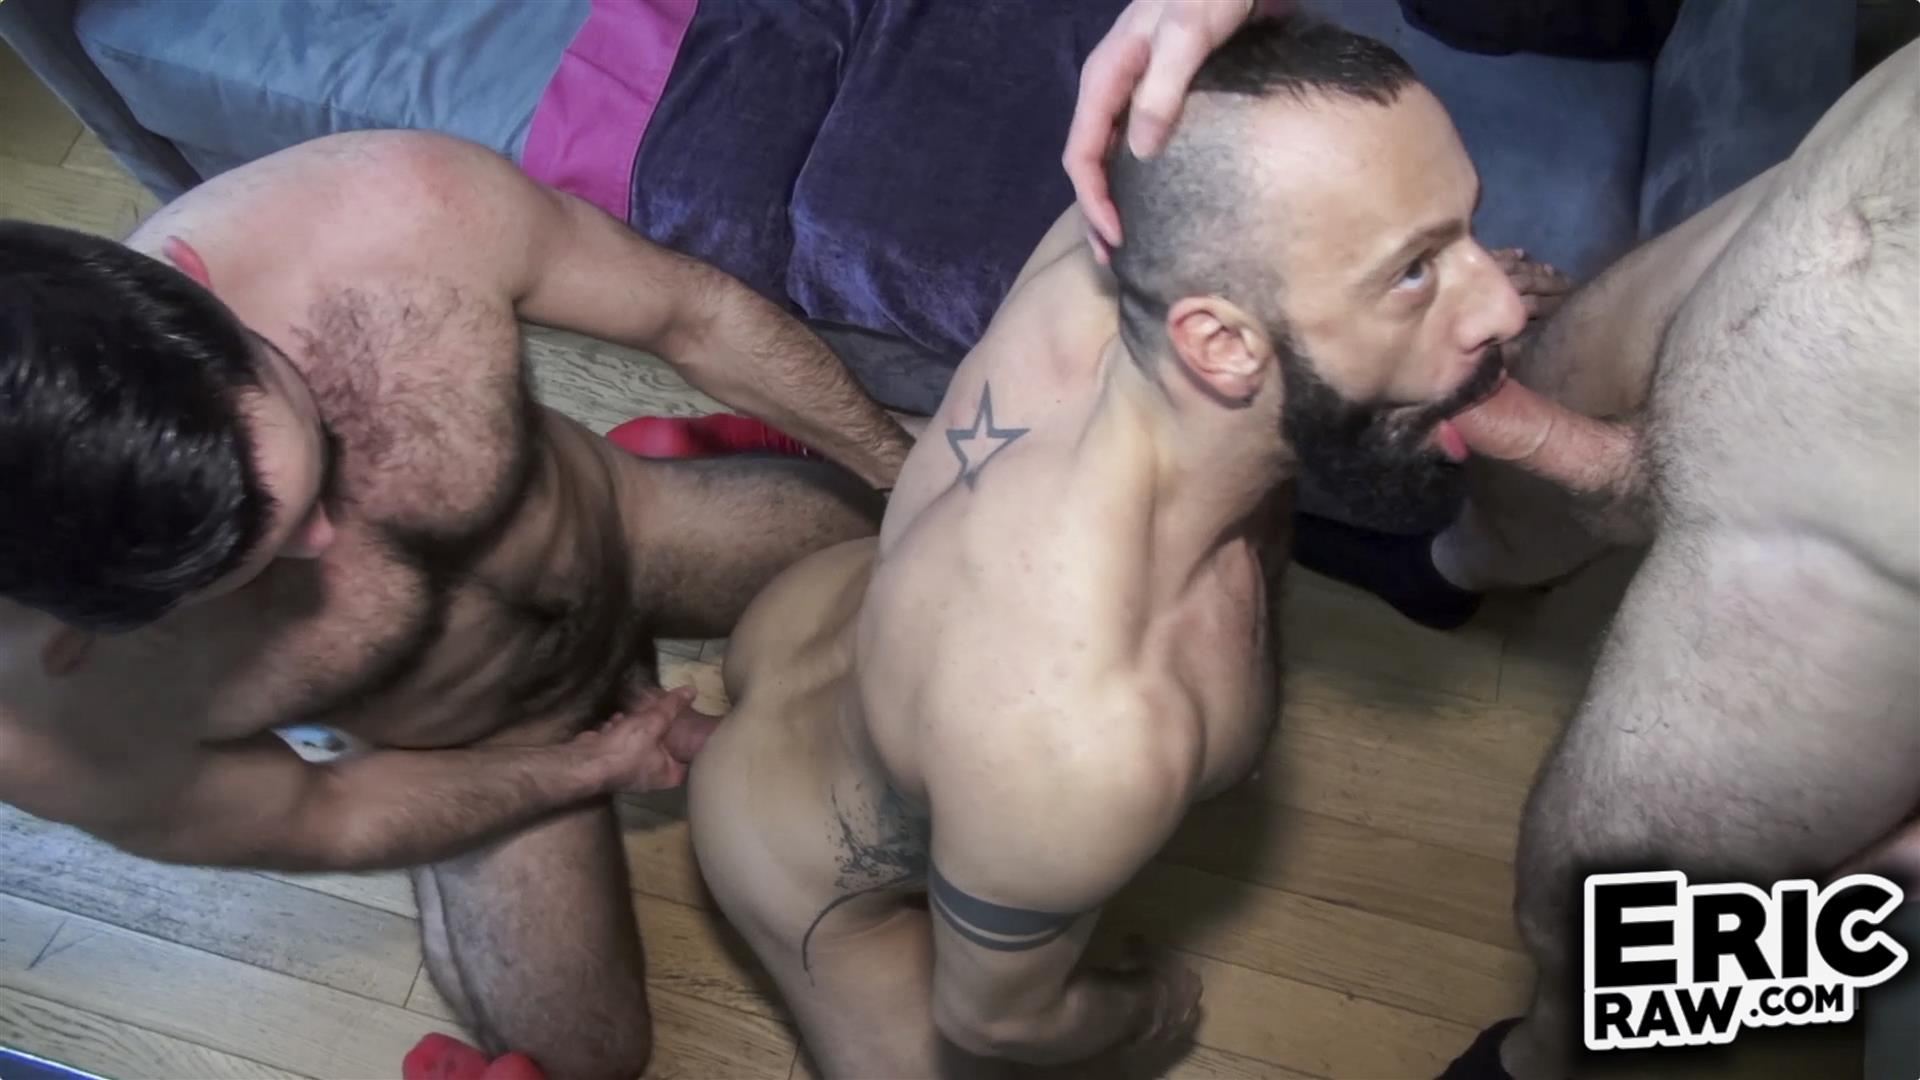 Eric Raw Bareback Threesome Hairy Muscle Hunks Amateur 06 Bareback Fuck Date With Three Hairy Muscular Jocks